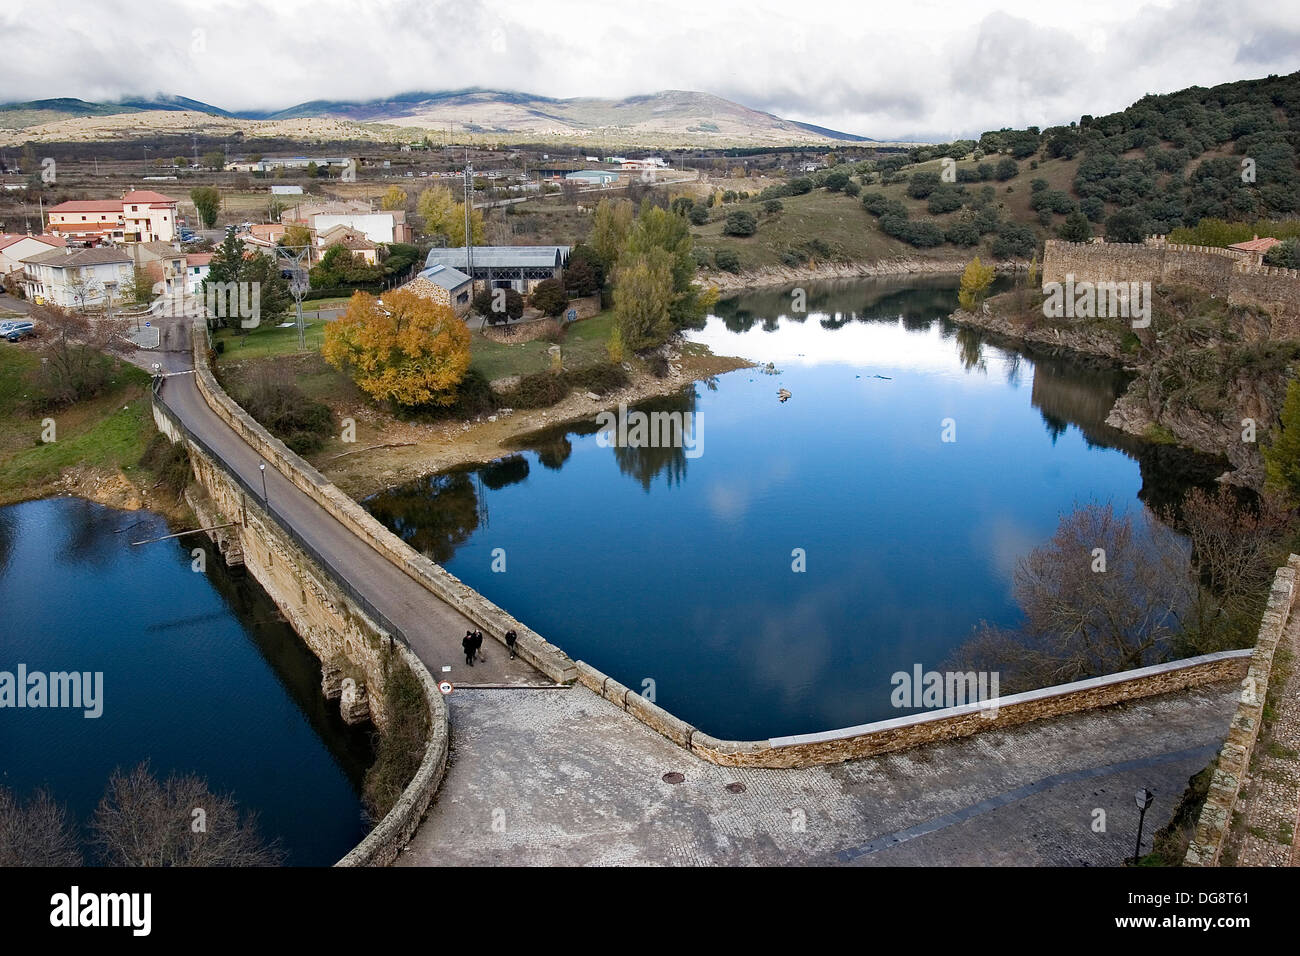 Piscinas Buitrago Lozoya River Buitrago De Lozoya Madrid Spain Stock Photo